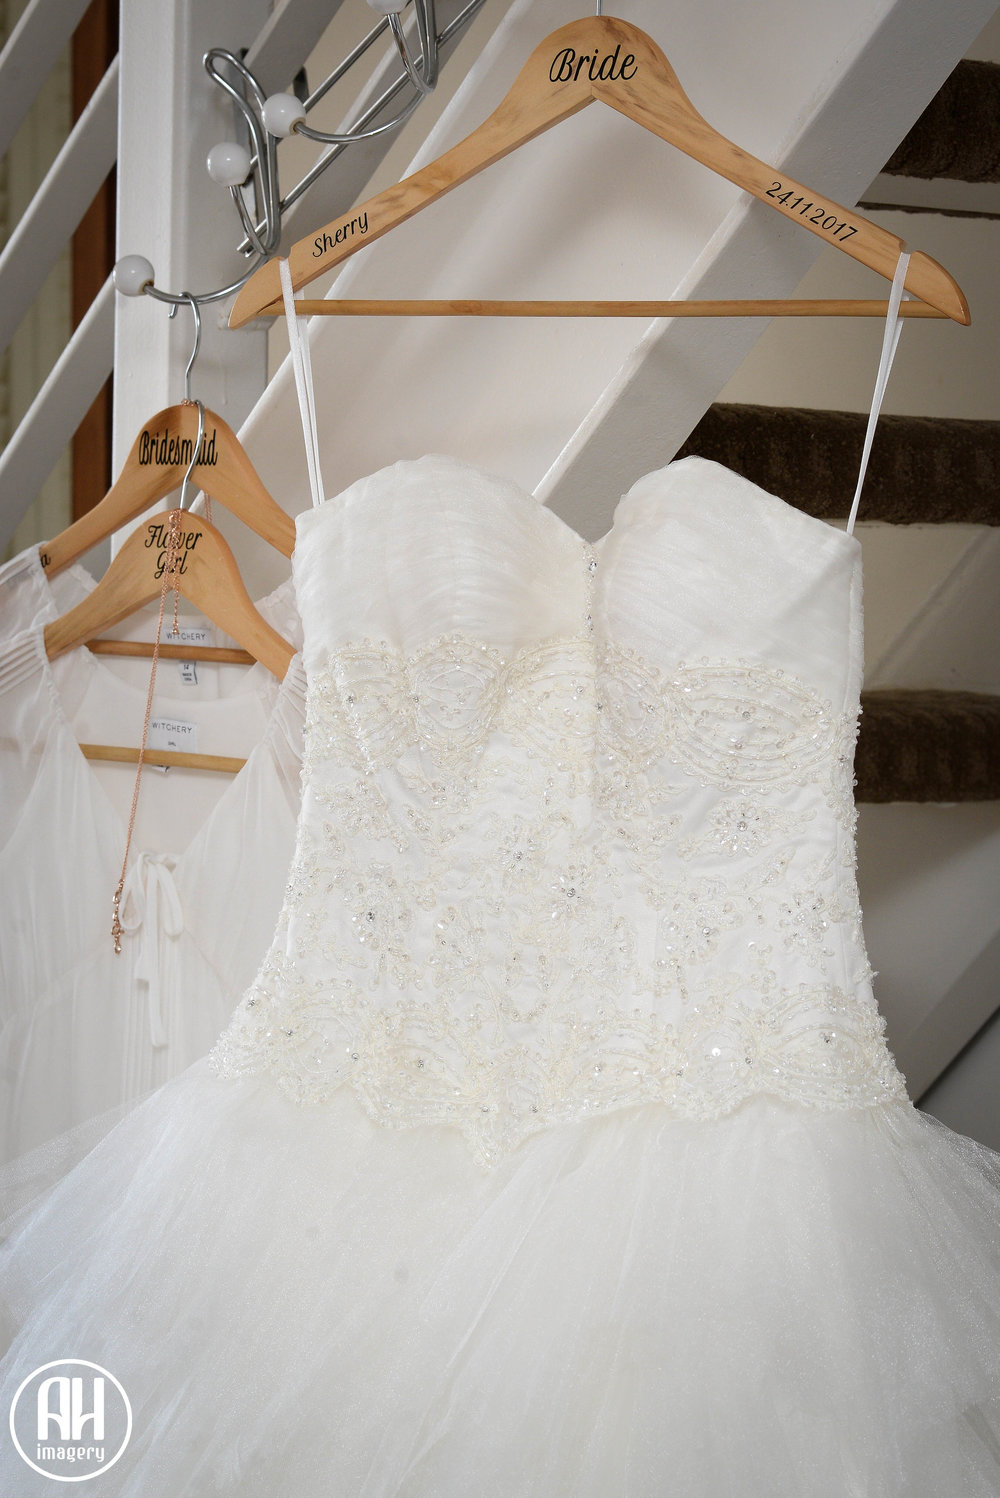 Strapless Disney Wedding dress with crystals hanging up before a wedding